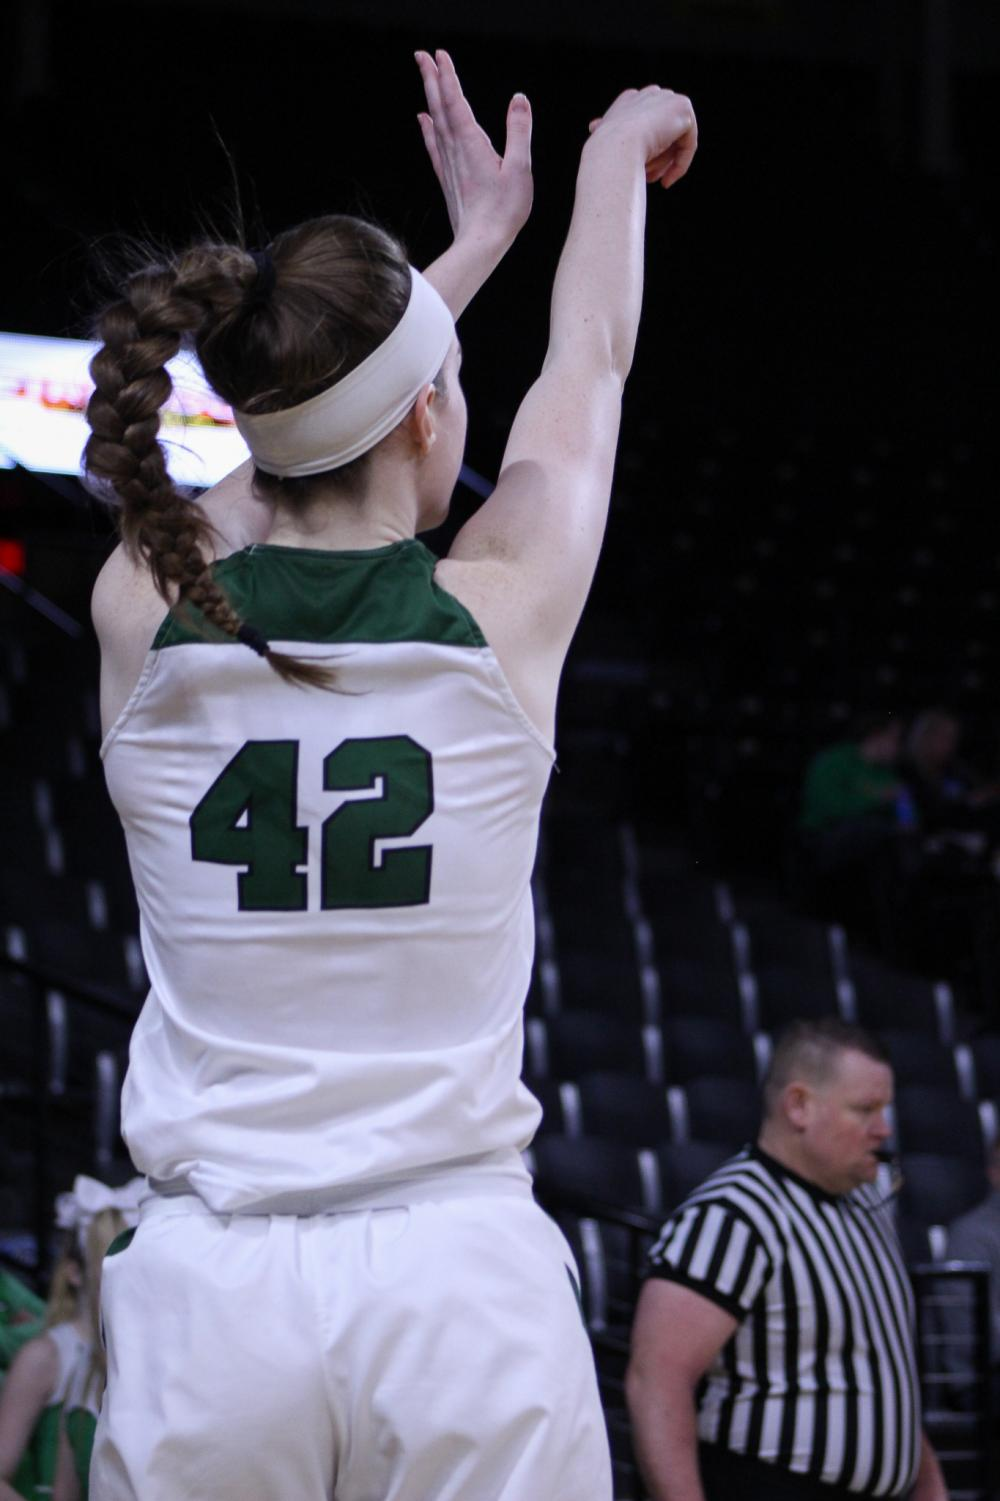 Senior Kennedy Brown drills a three. The Panthers defeated Shawnee Mission Northwest 60-27 in the quarterfinals round of the Class 6A State Championship Games.